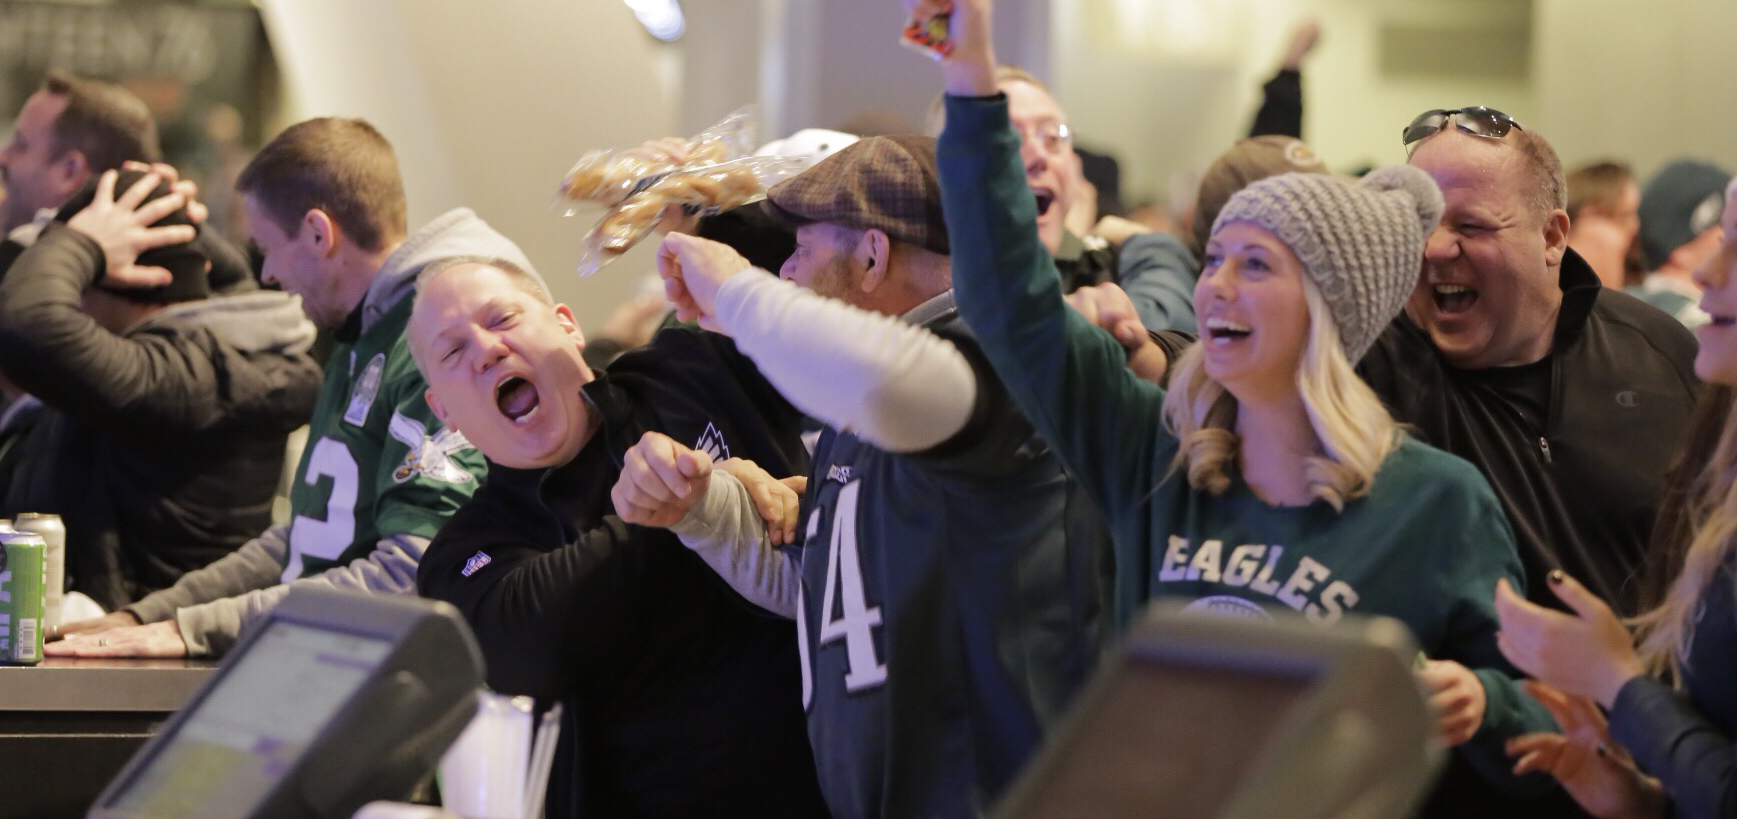 Eagles fans celebrate in the Panasonic Club during the NFC championship game at Lincoln Financial Field.